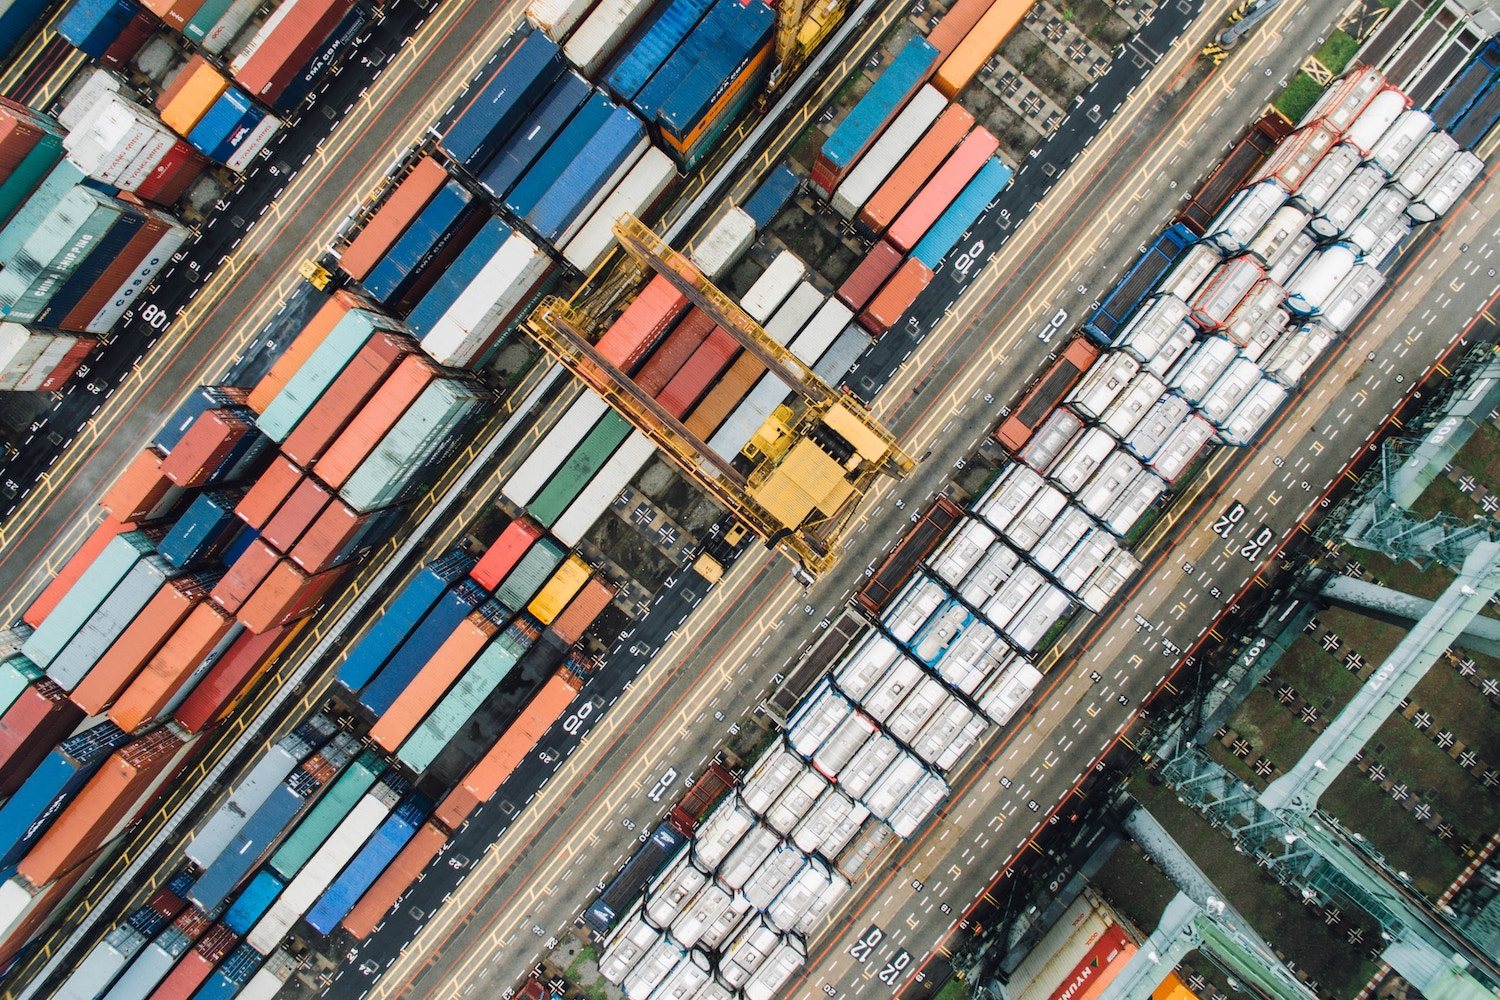 photograph of shipping containers